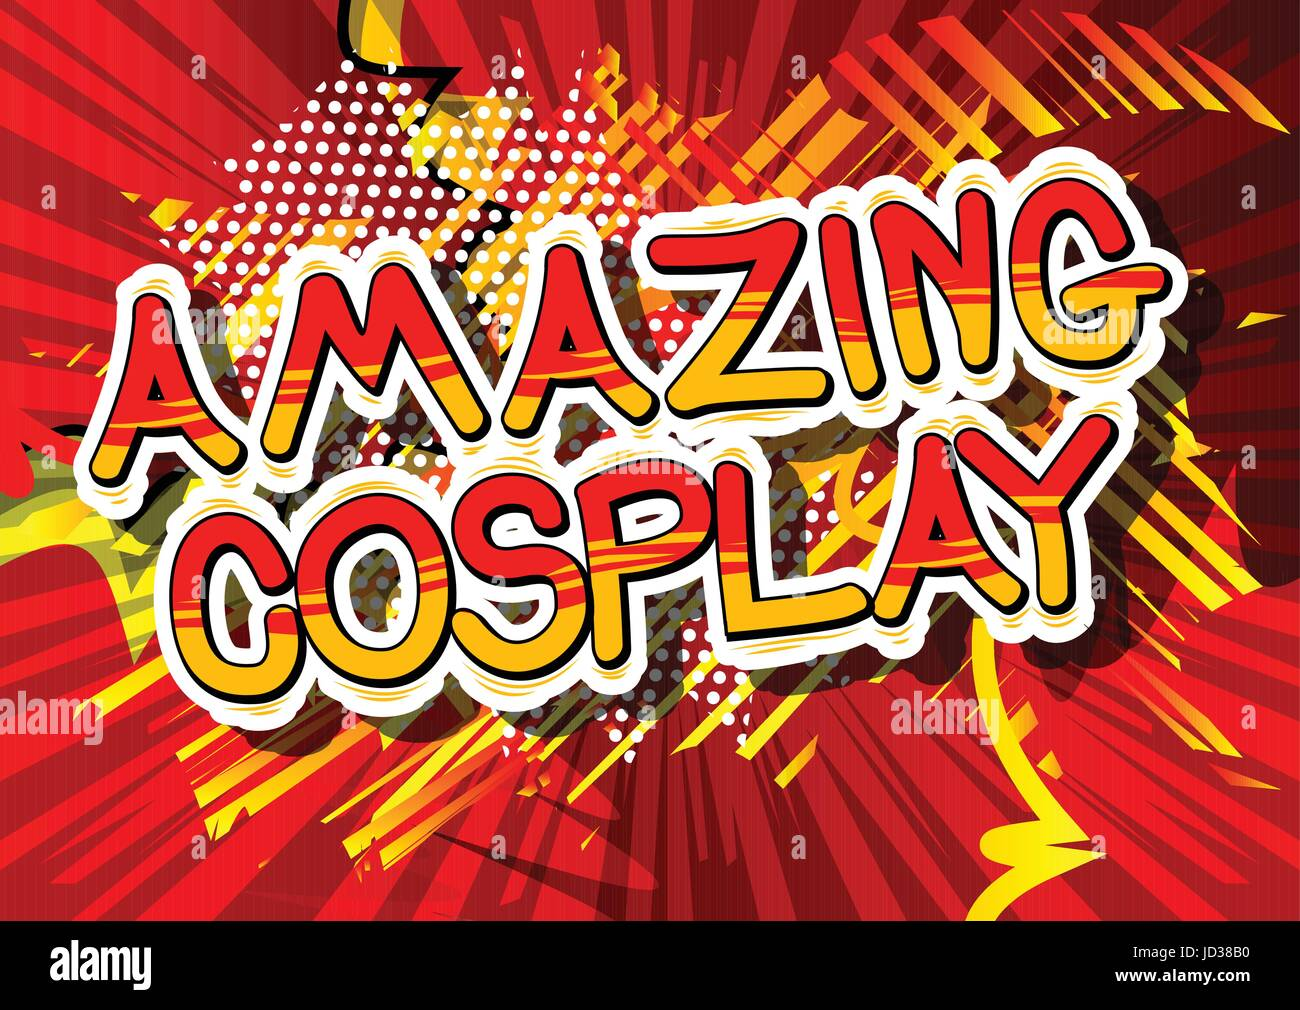 Amazing Cosplay - Comic book style word on abstract background. - Stock Image